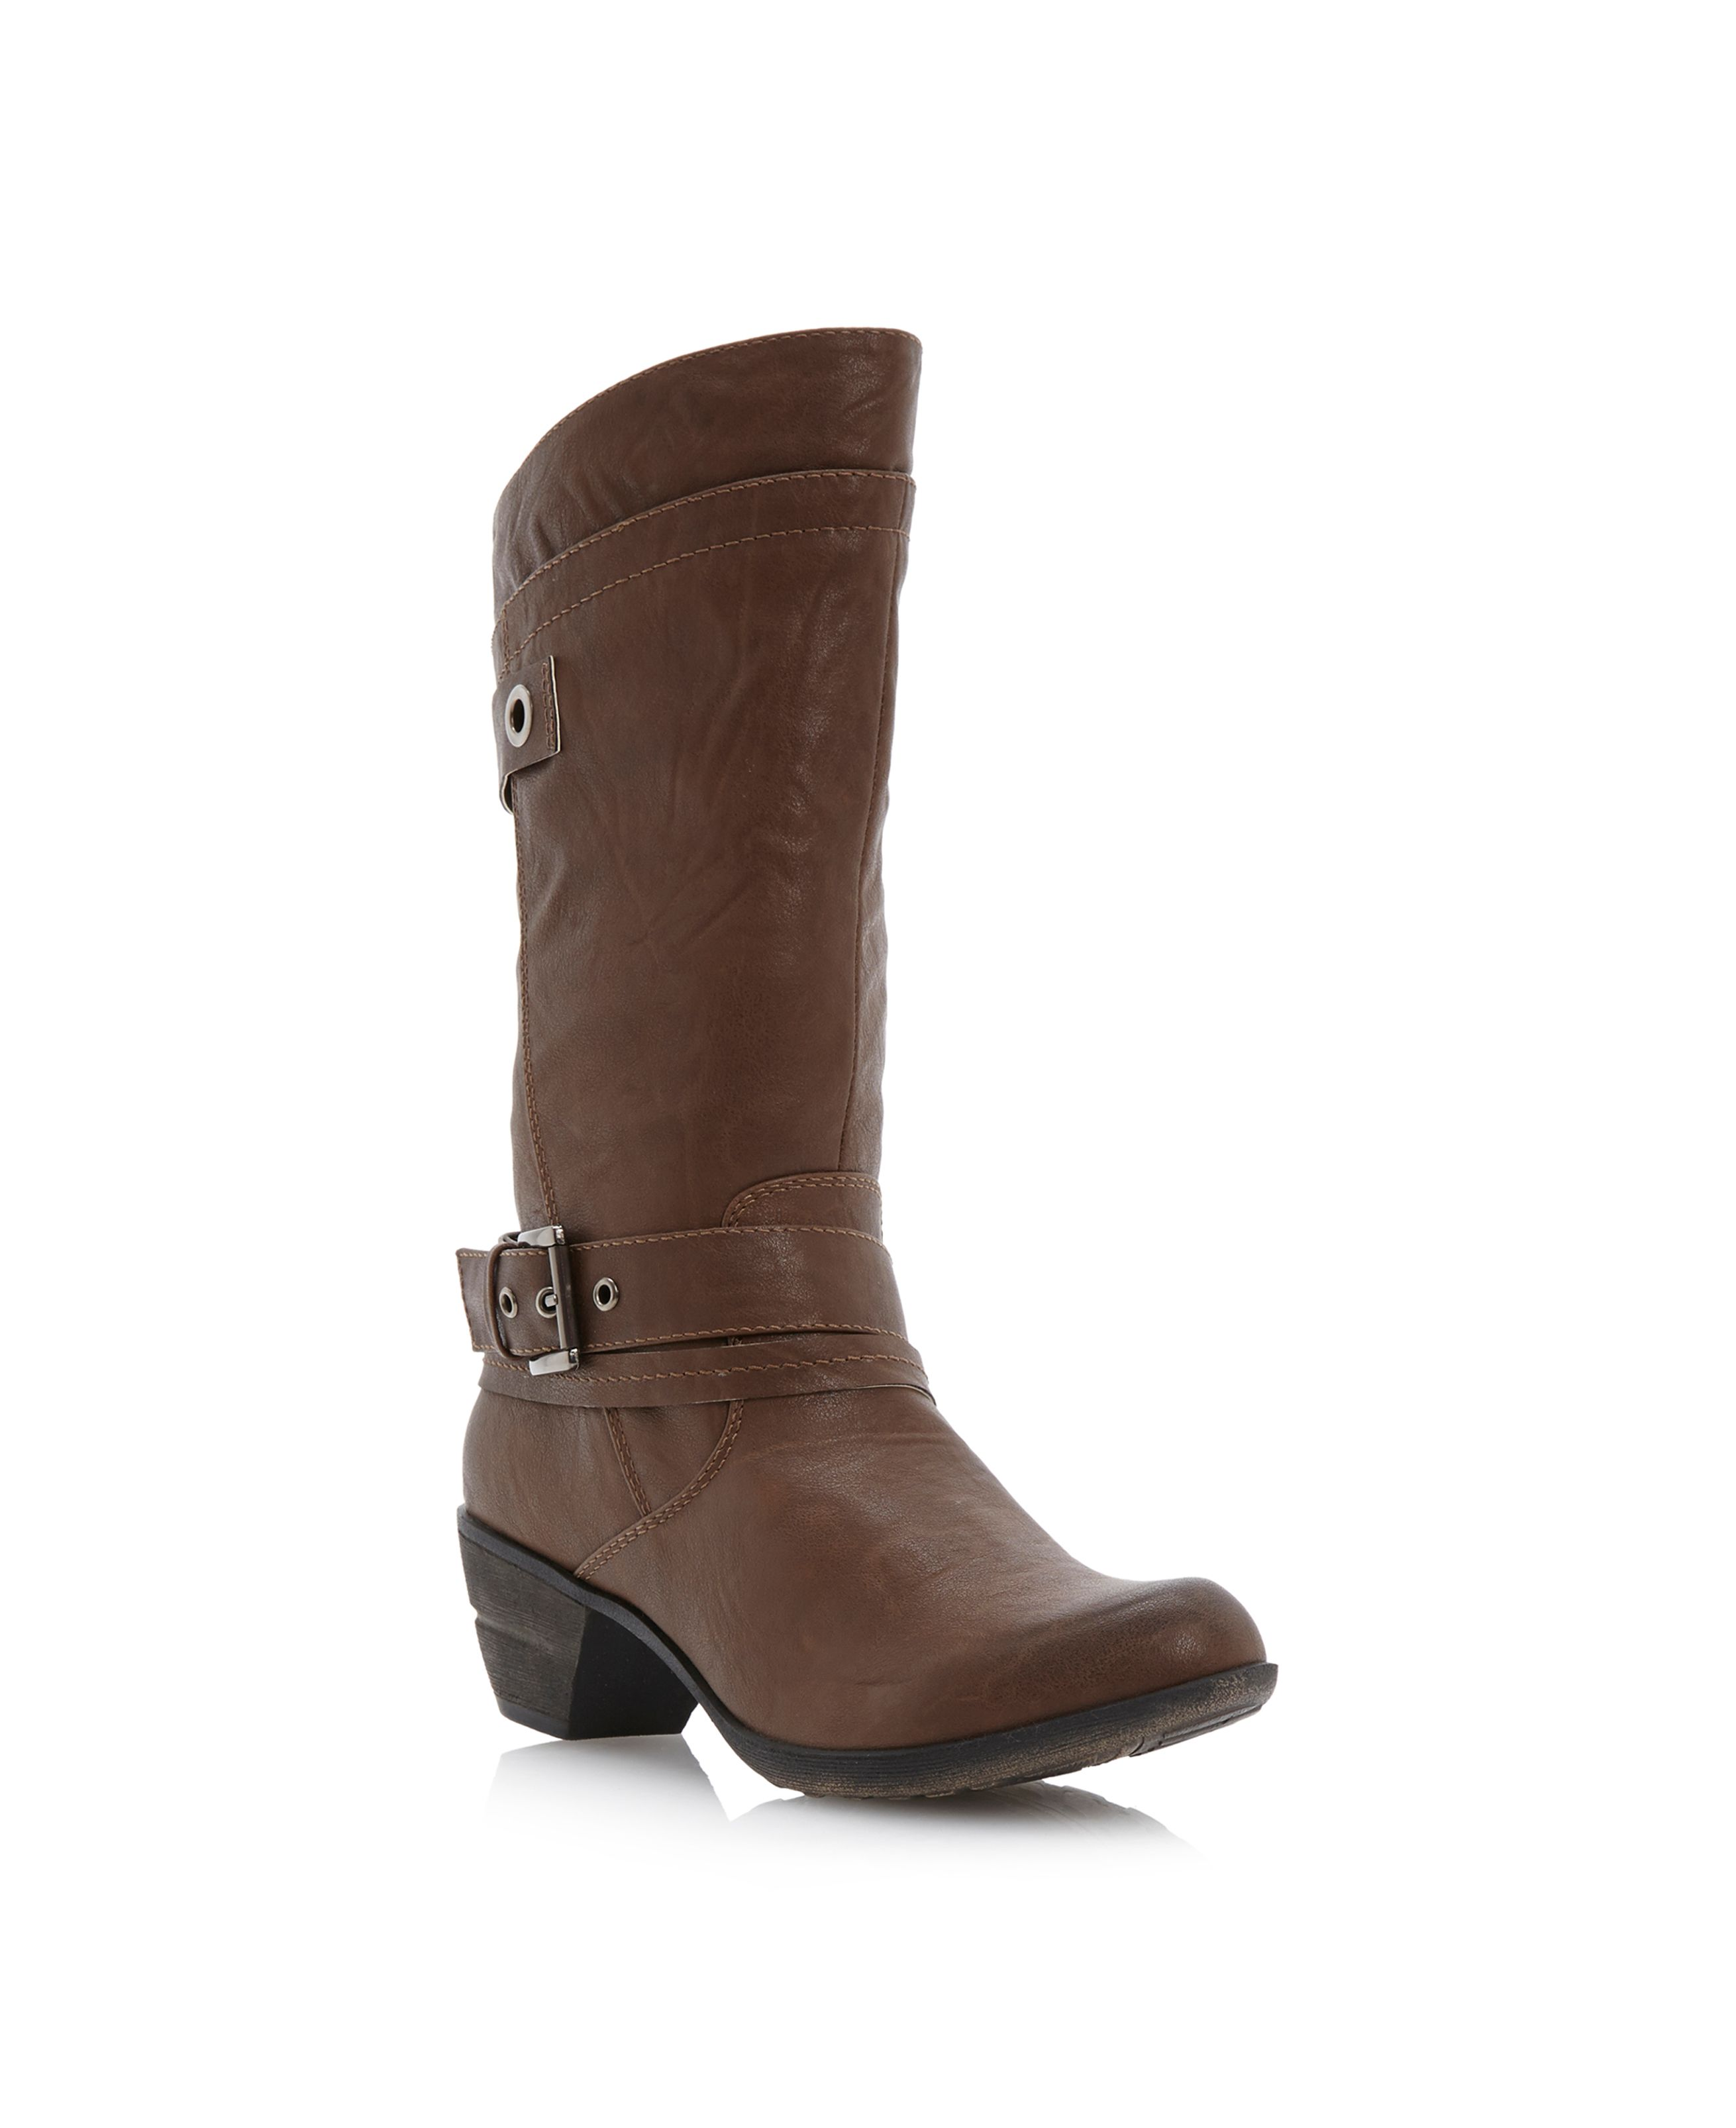 Tacoma-buckle detail calf boots